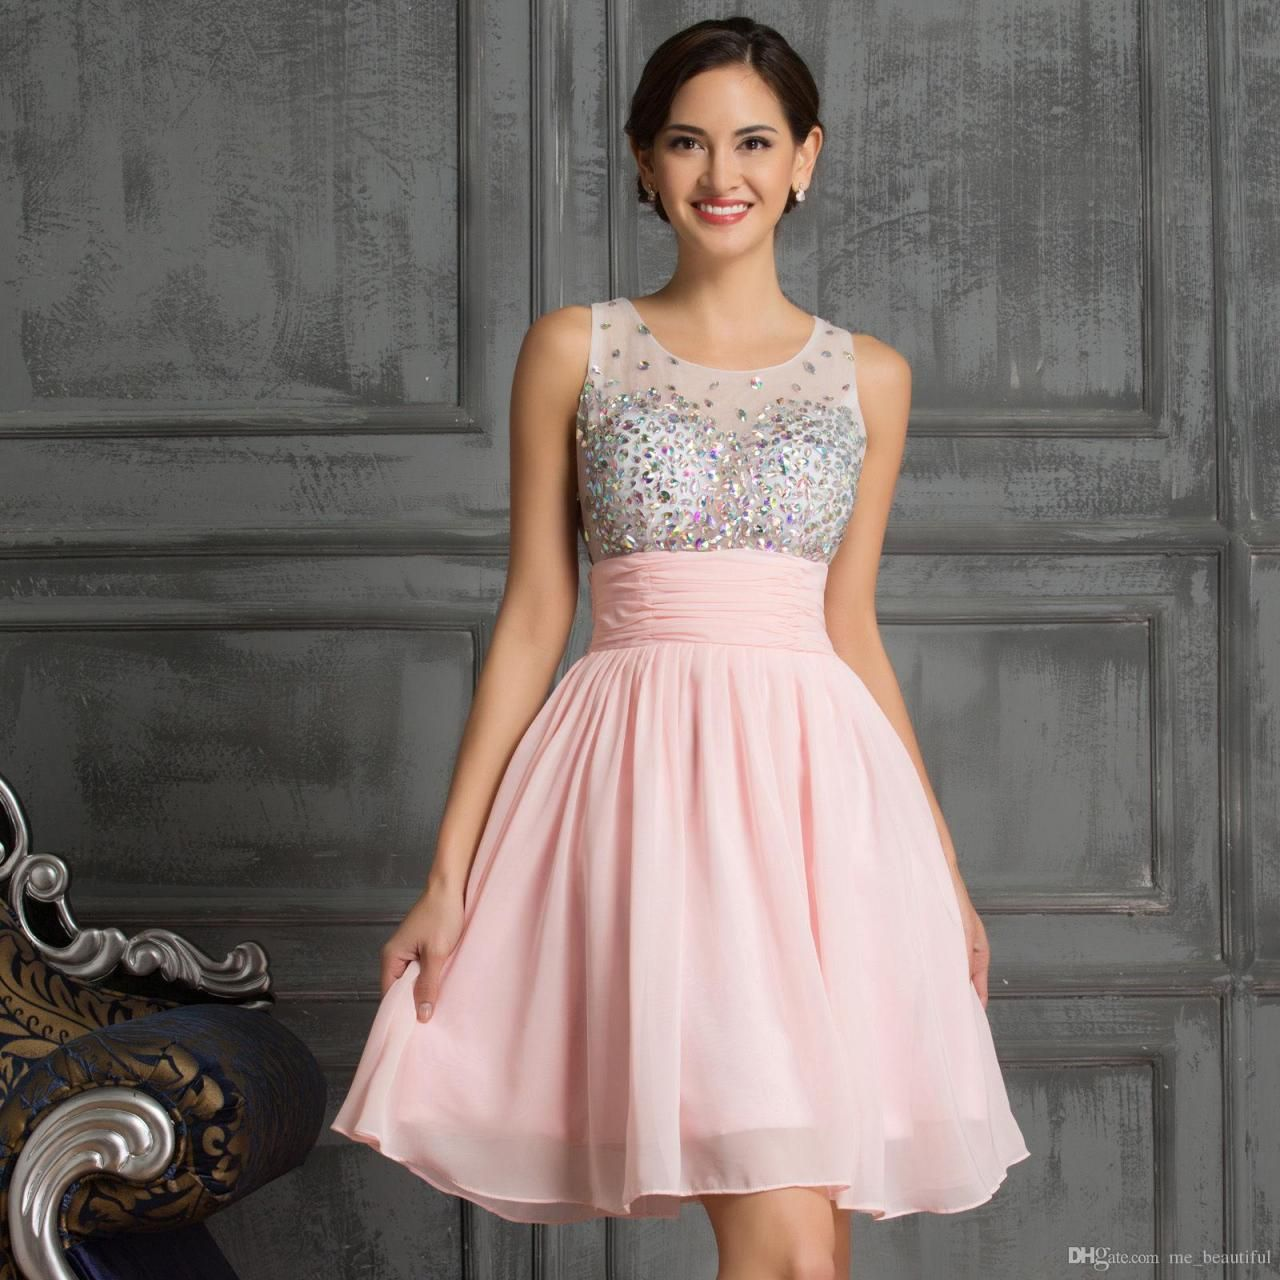 Short Semi Formal Dresses For Juniors | Analynn dresses ...